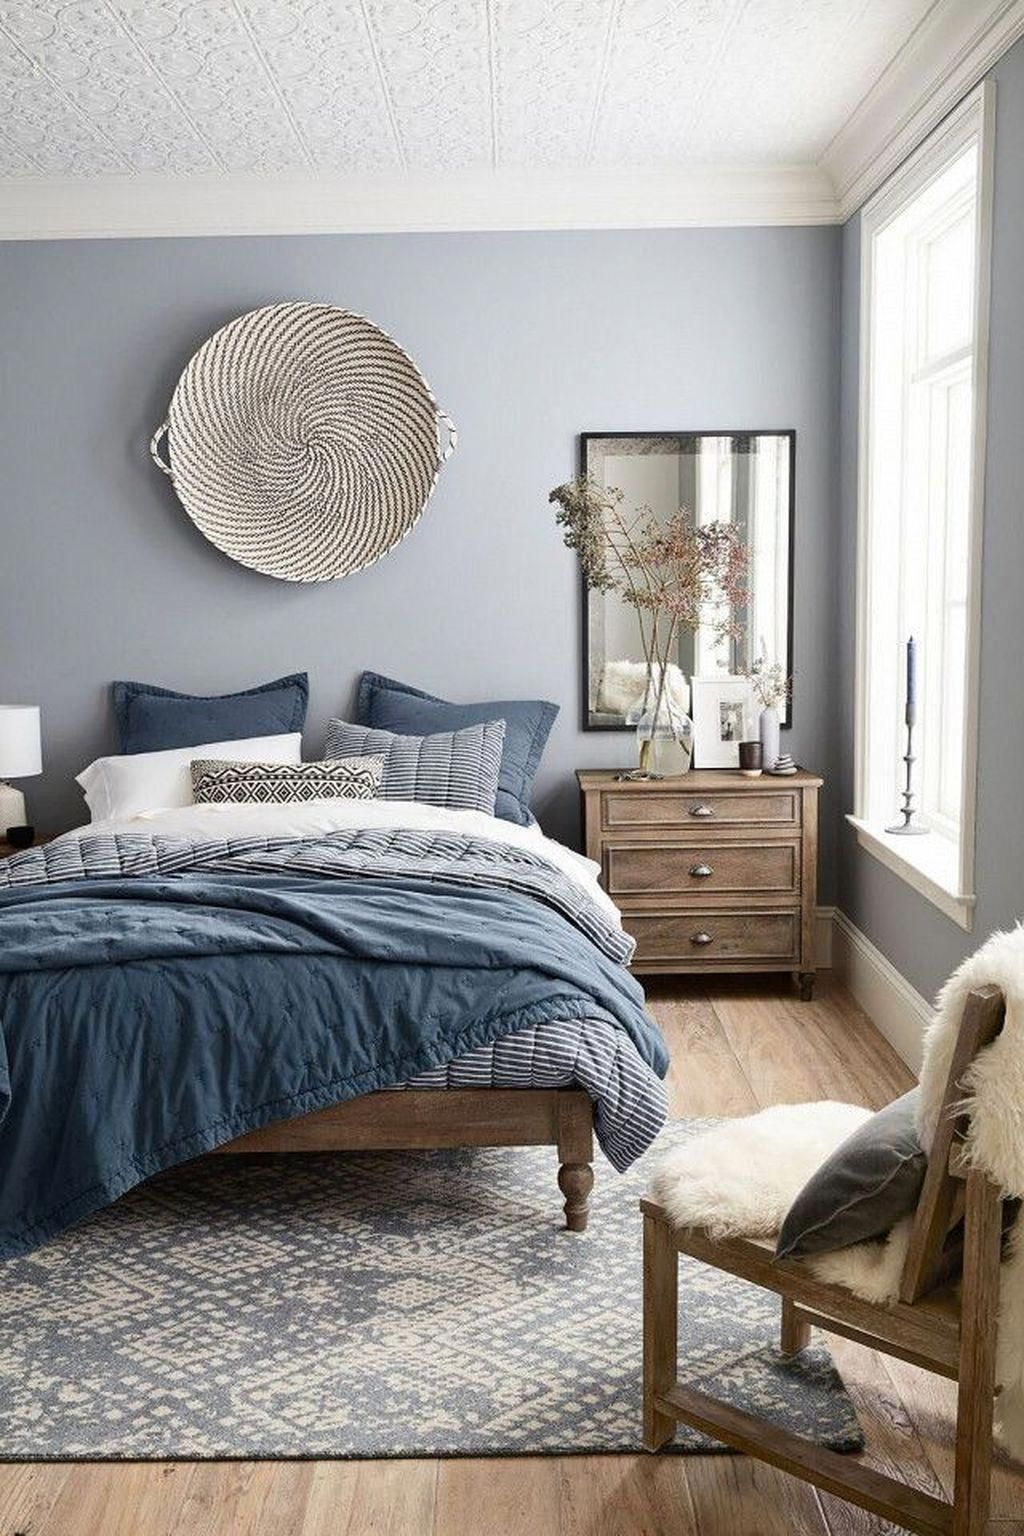 10 Romantic Bedroom Ideas for Couples in Love | Blue ...